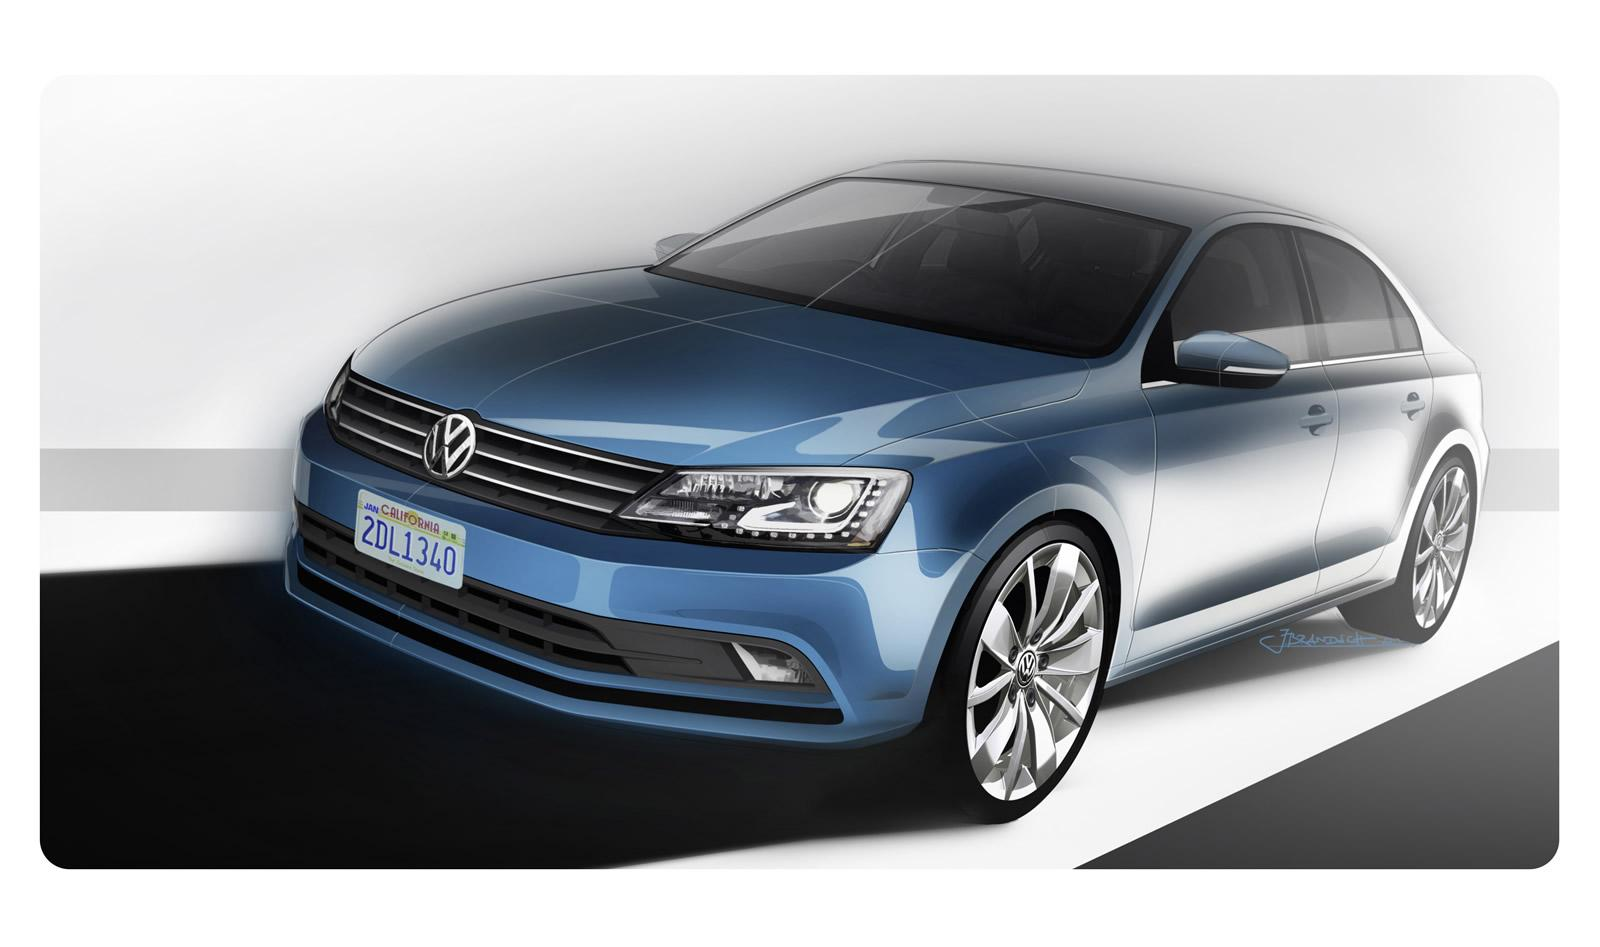 2015 Volkswagen Jetta Revealed: Cosmetic Tweaks and New TDI - autoevolution